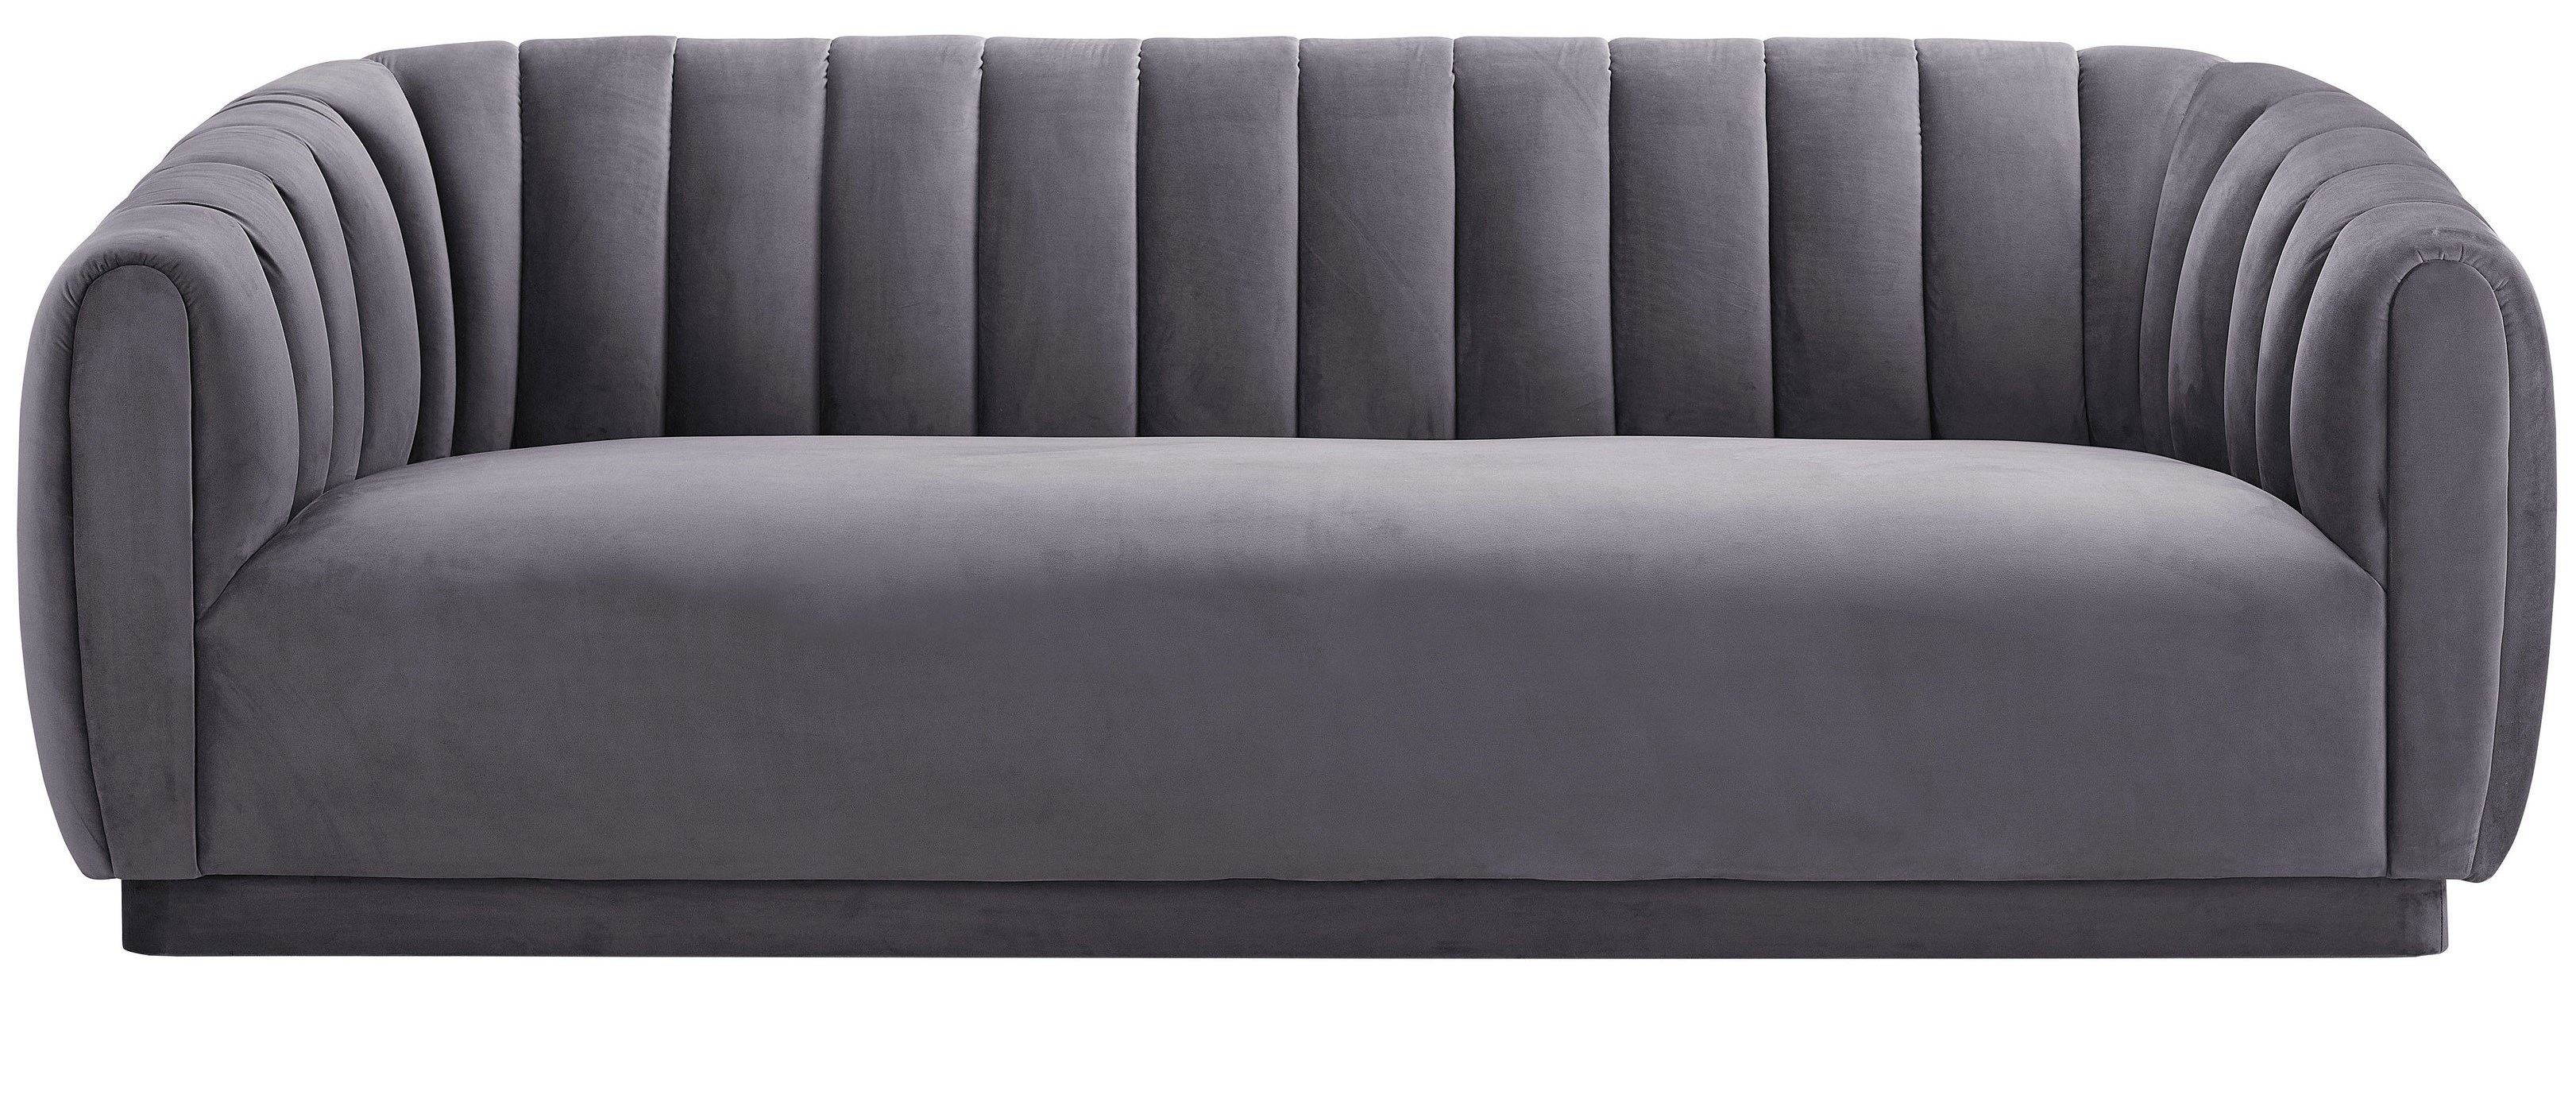 Marissa Velvet Sofa, Gray With Regard To Marissa Sofa Chairs (Image 21 of 25)